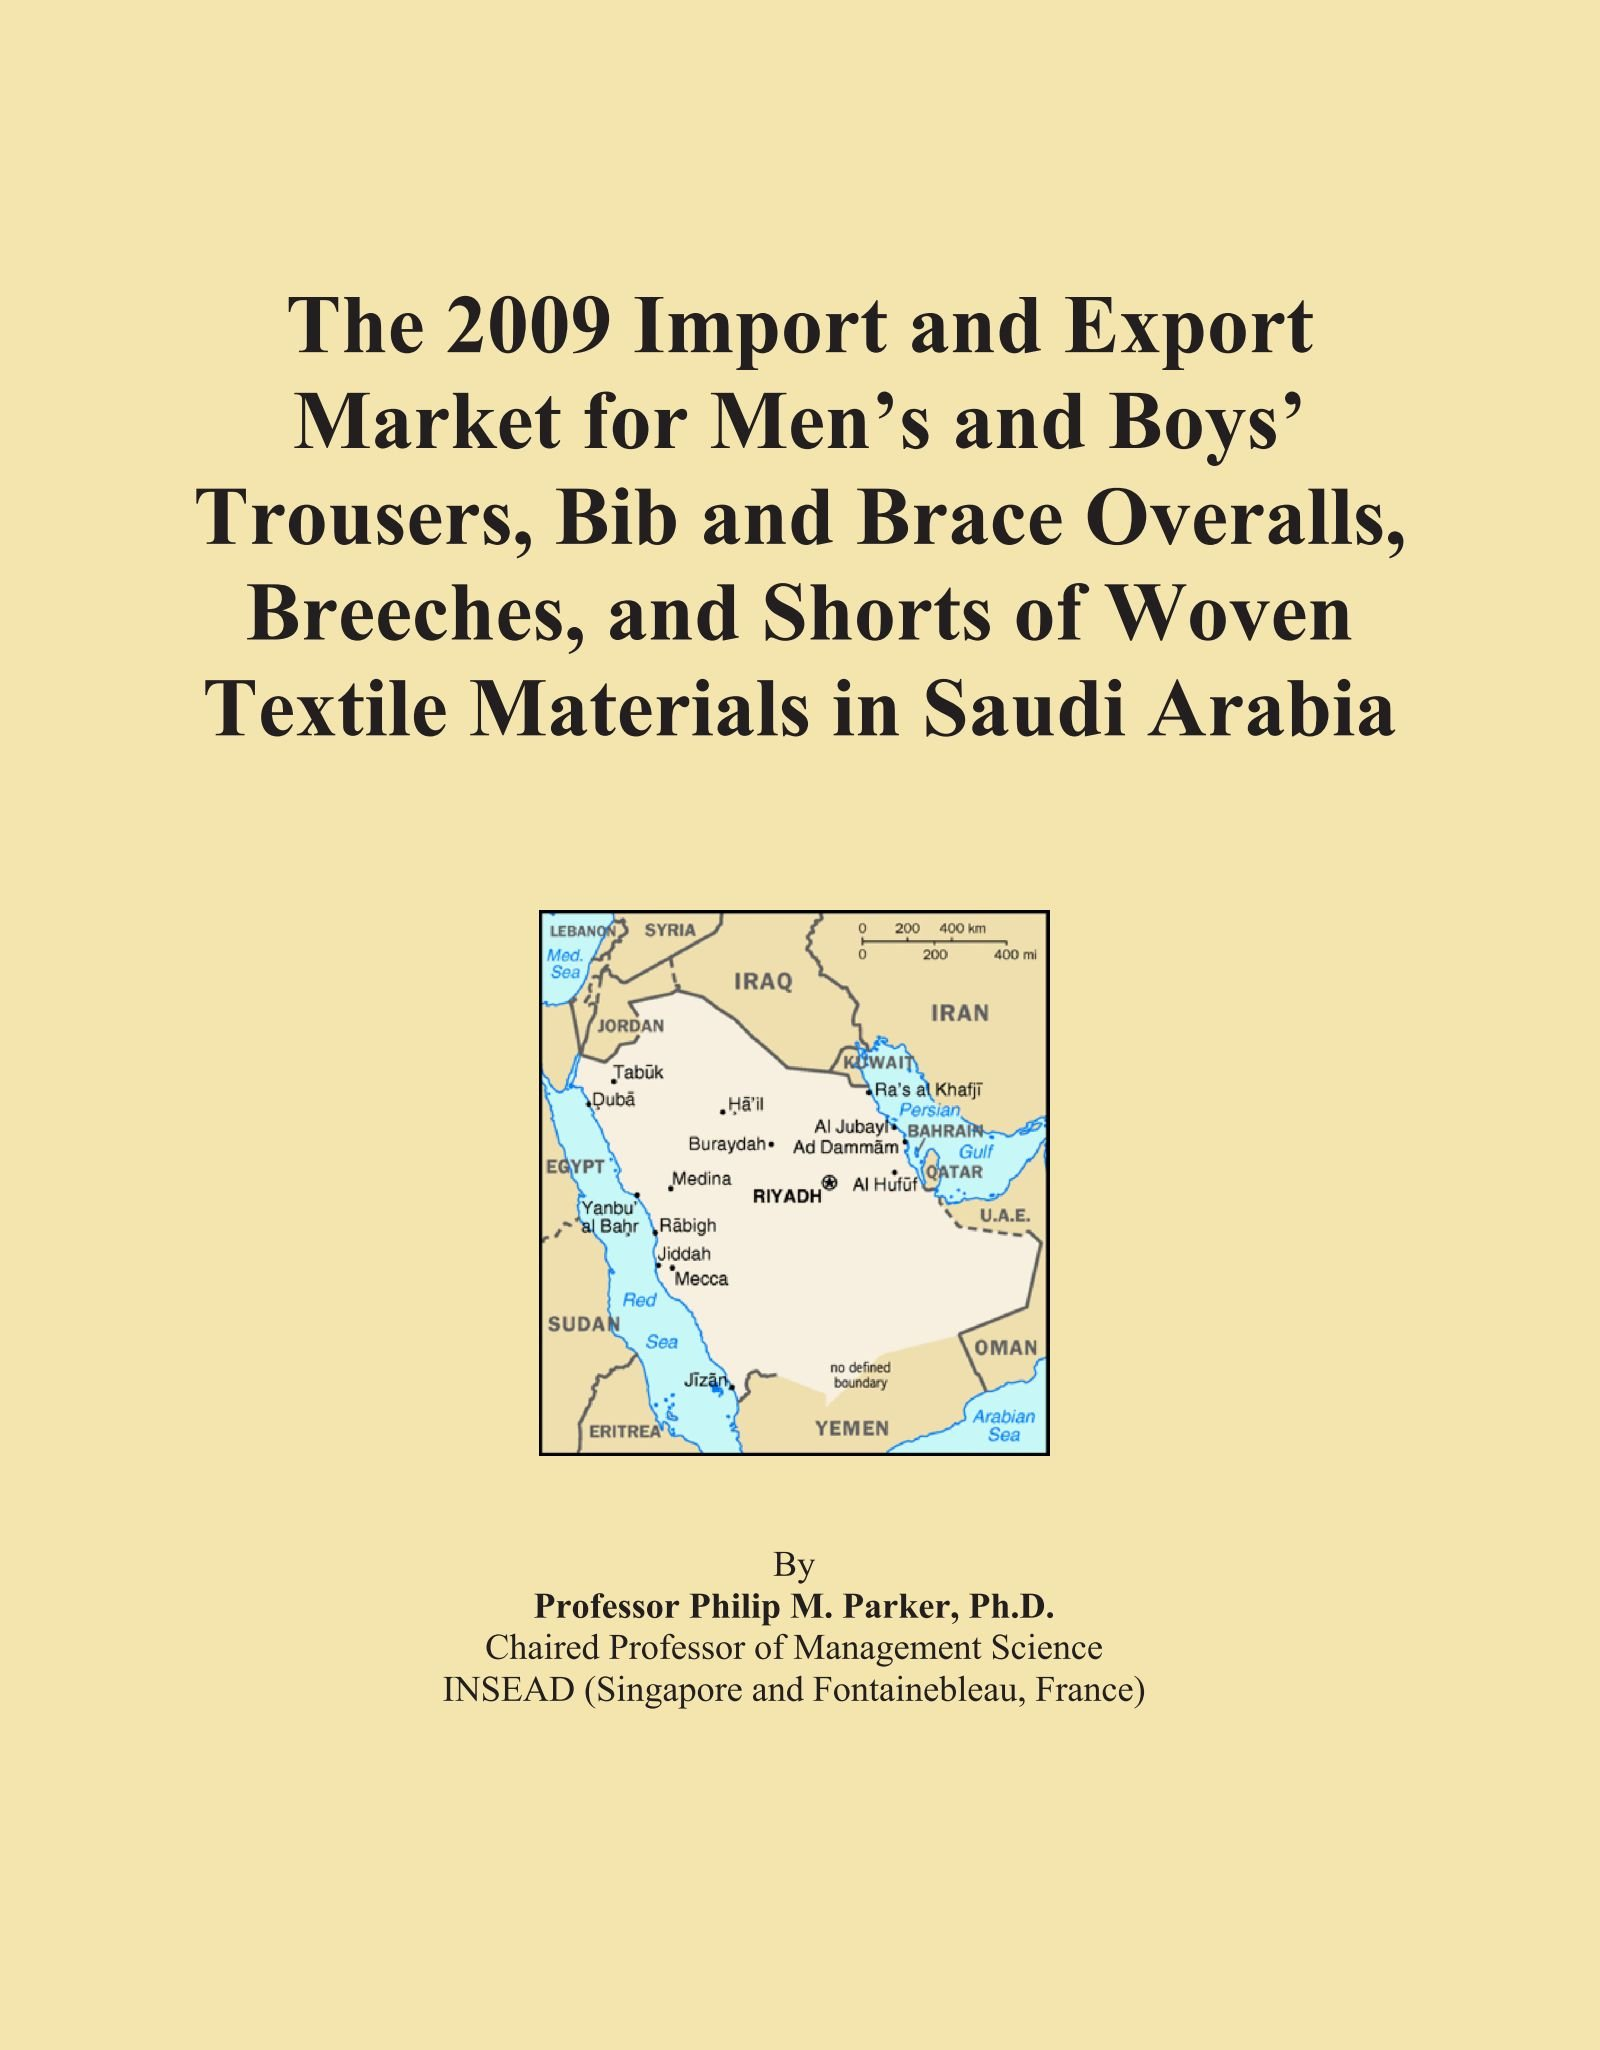 Download The 2009 Import and Export Market for Men's and Boys' Trousers, Bib and Brace Overalls, Breeches, and Shorts of Woven Textile Materials in Saudi Arabia pdf